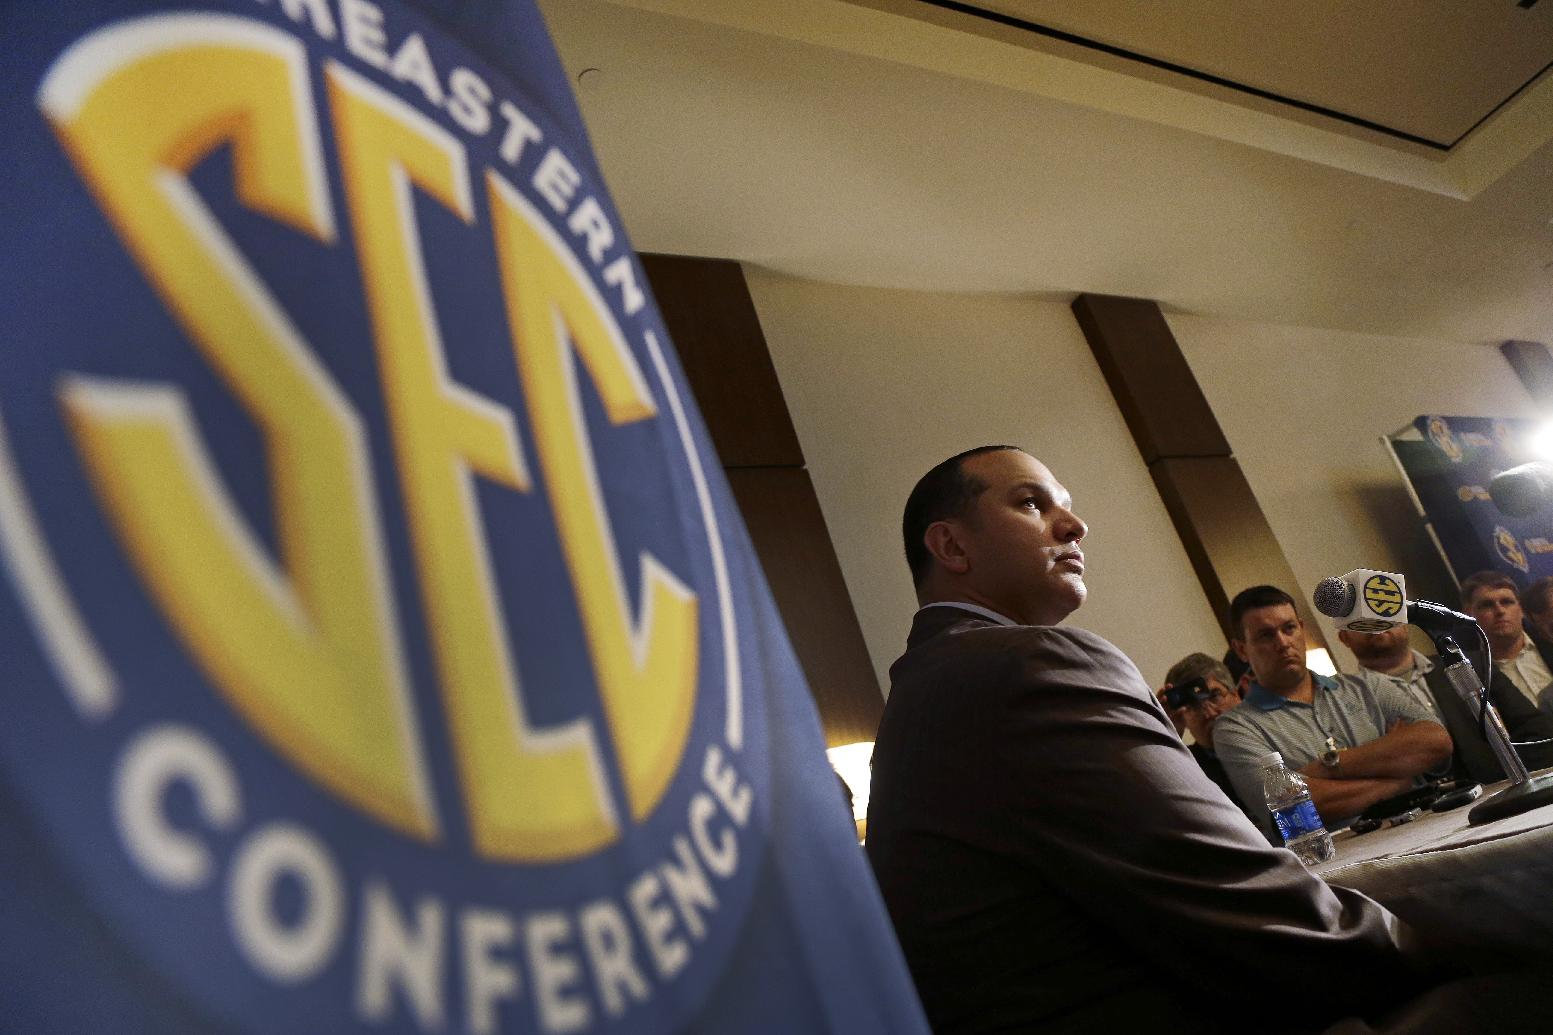 Auburn coach Tony Barbee talks to reporters during the Southeastern Conference NCAA college basketball media day in Birmingham, Ala., Wednesday, Oct. 16, 2013